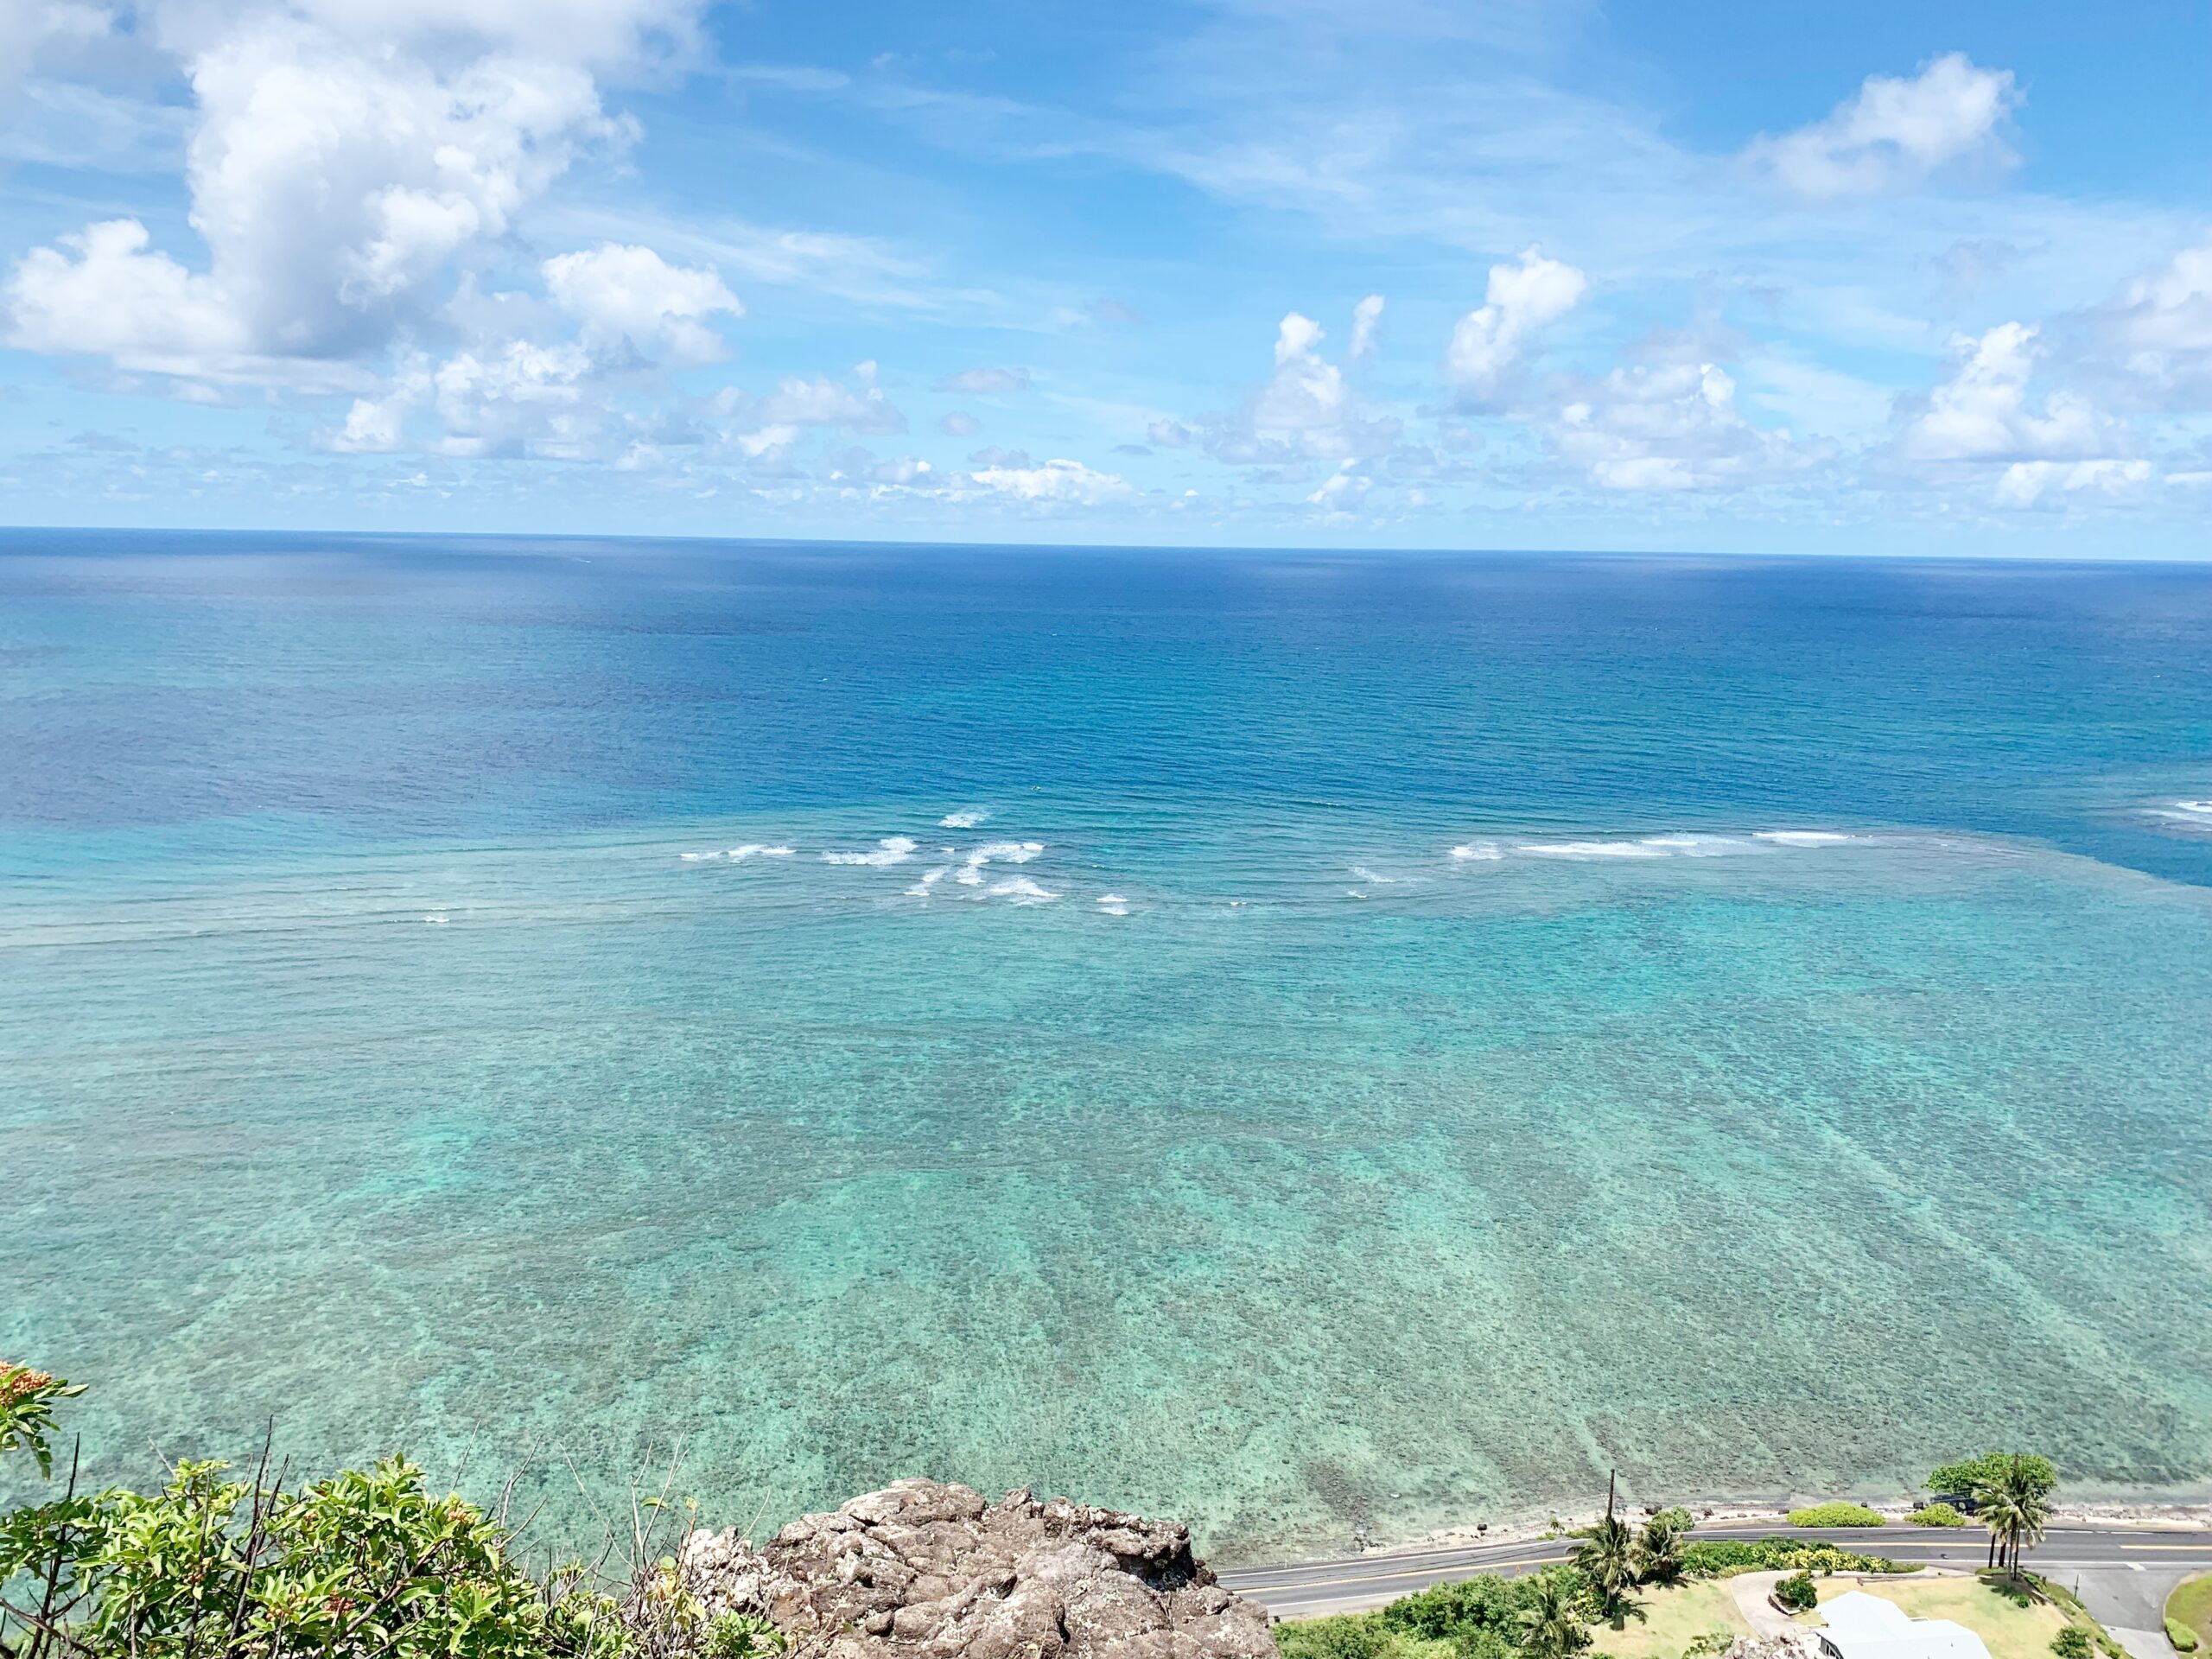 Hiking In Hawaii: Crouching Lion Hike - Ready to go hiking in Hawaii? The Crouching Lion hike is not for the faint of heart, but the views are worth it! | Crouching Lion Hike | Crouching Lion Hawaii | Oahu Hikes